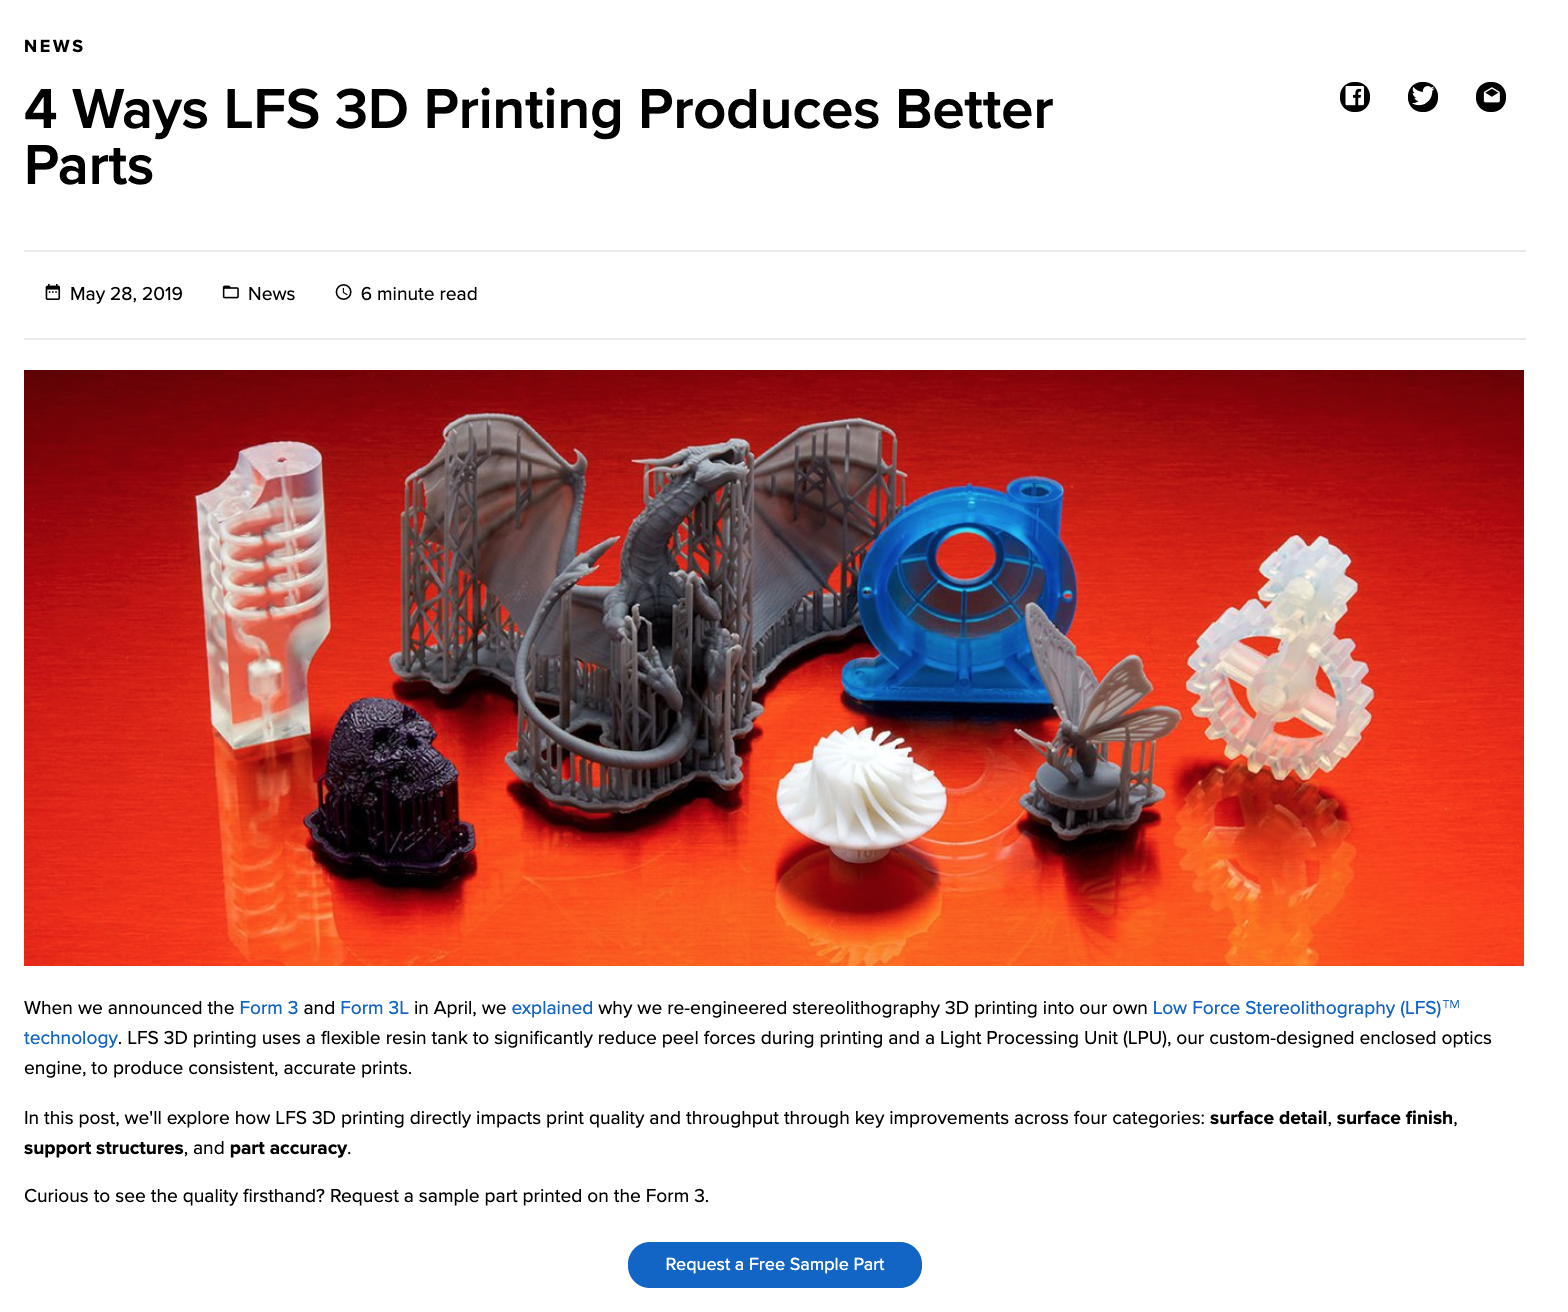 Blog: 4 Ways LFS 3D Printing Produces Better Parts